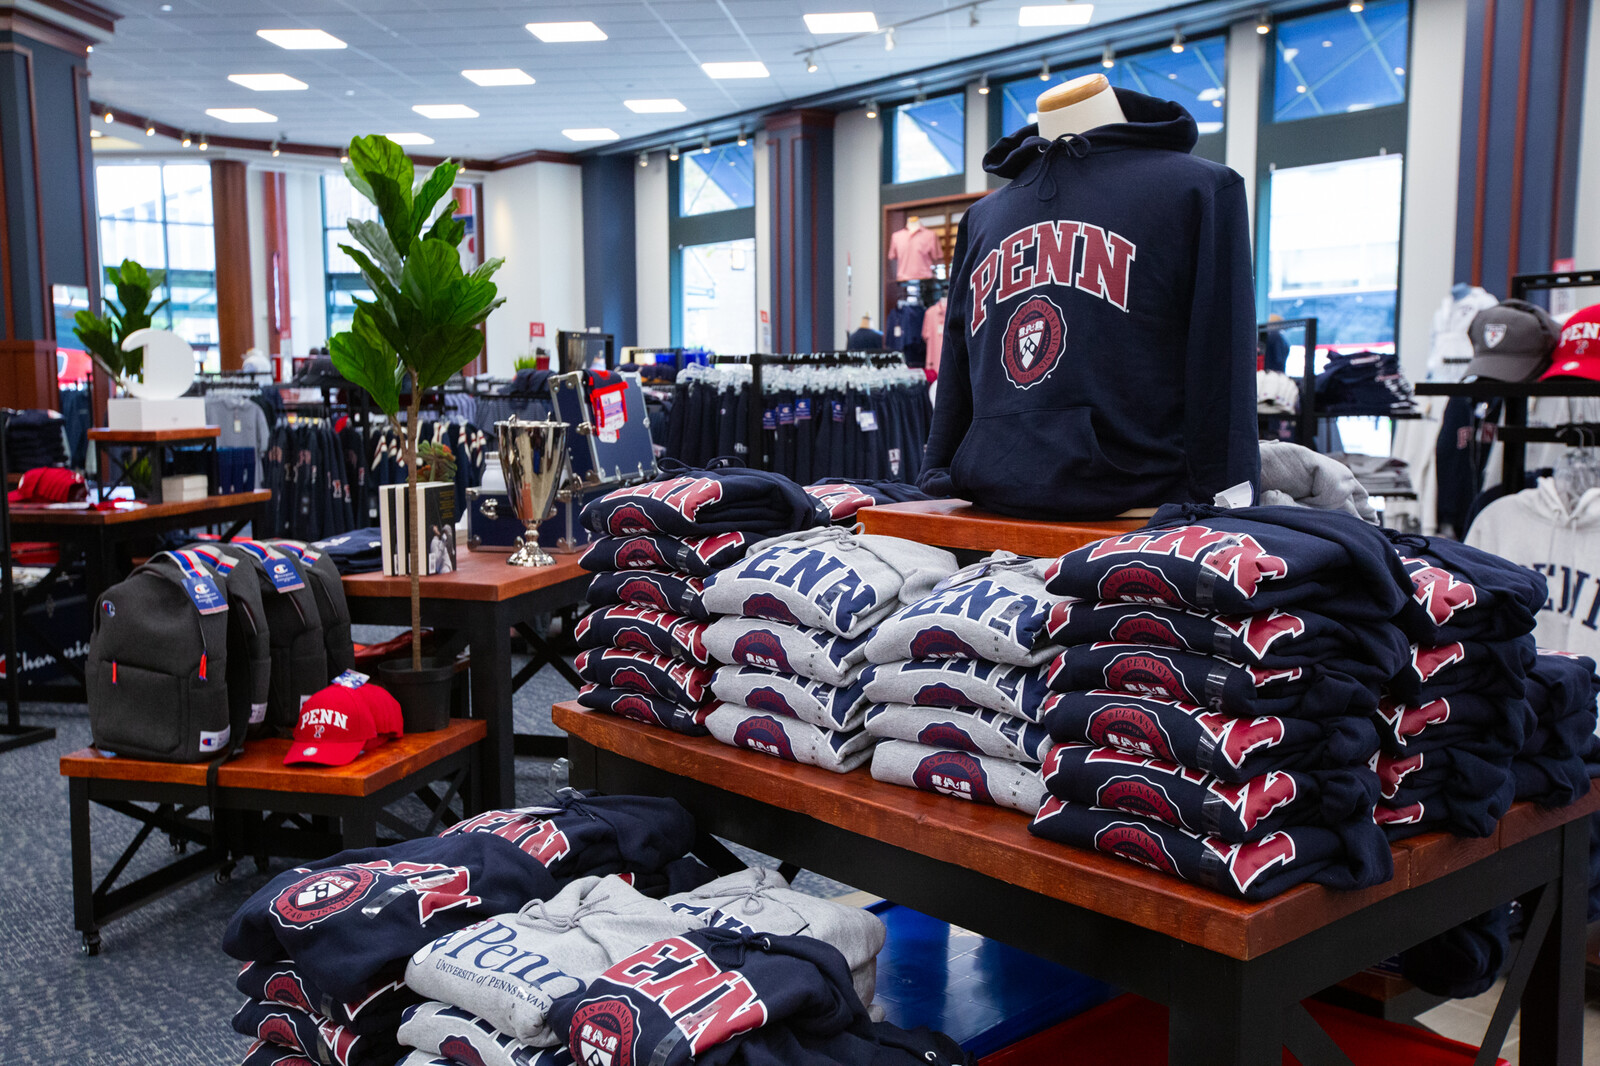 penn bookstore with apparel